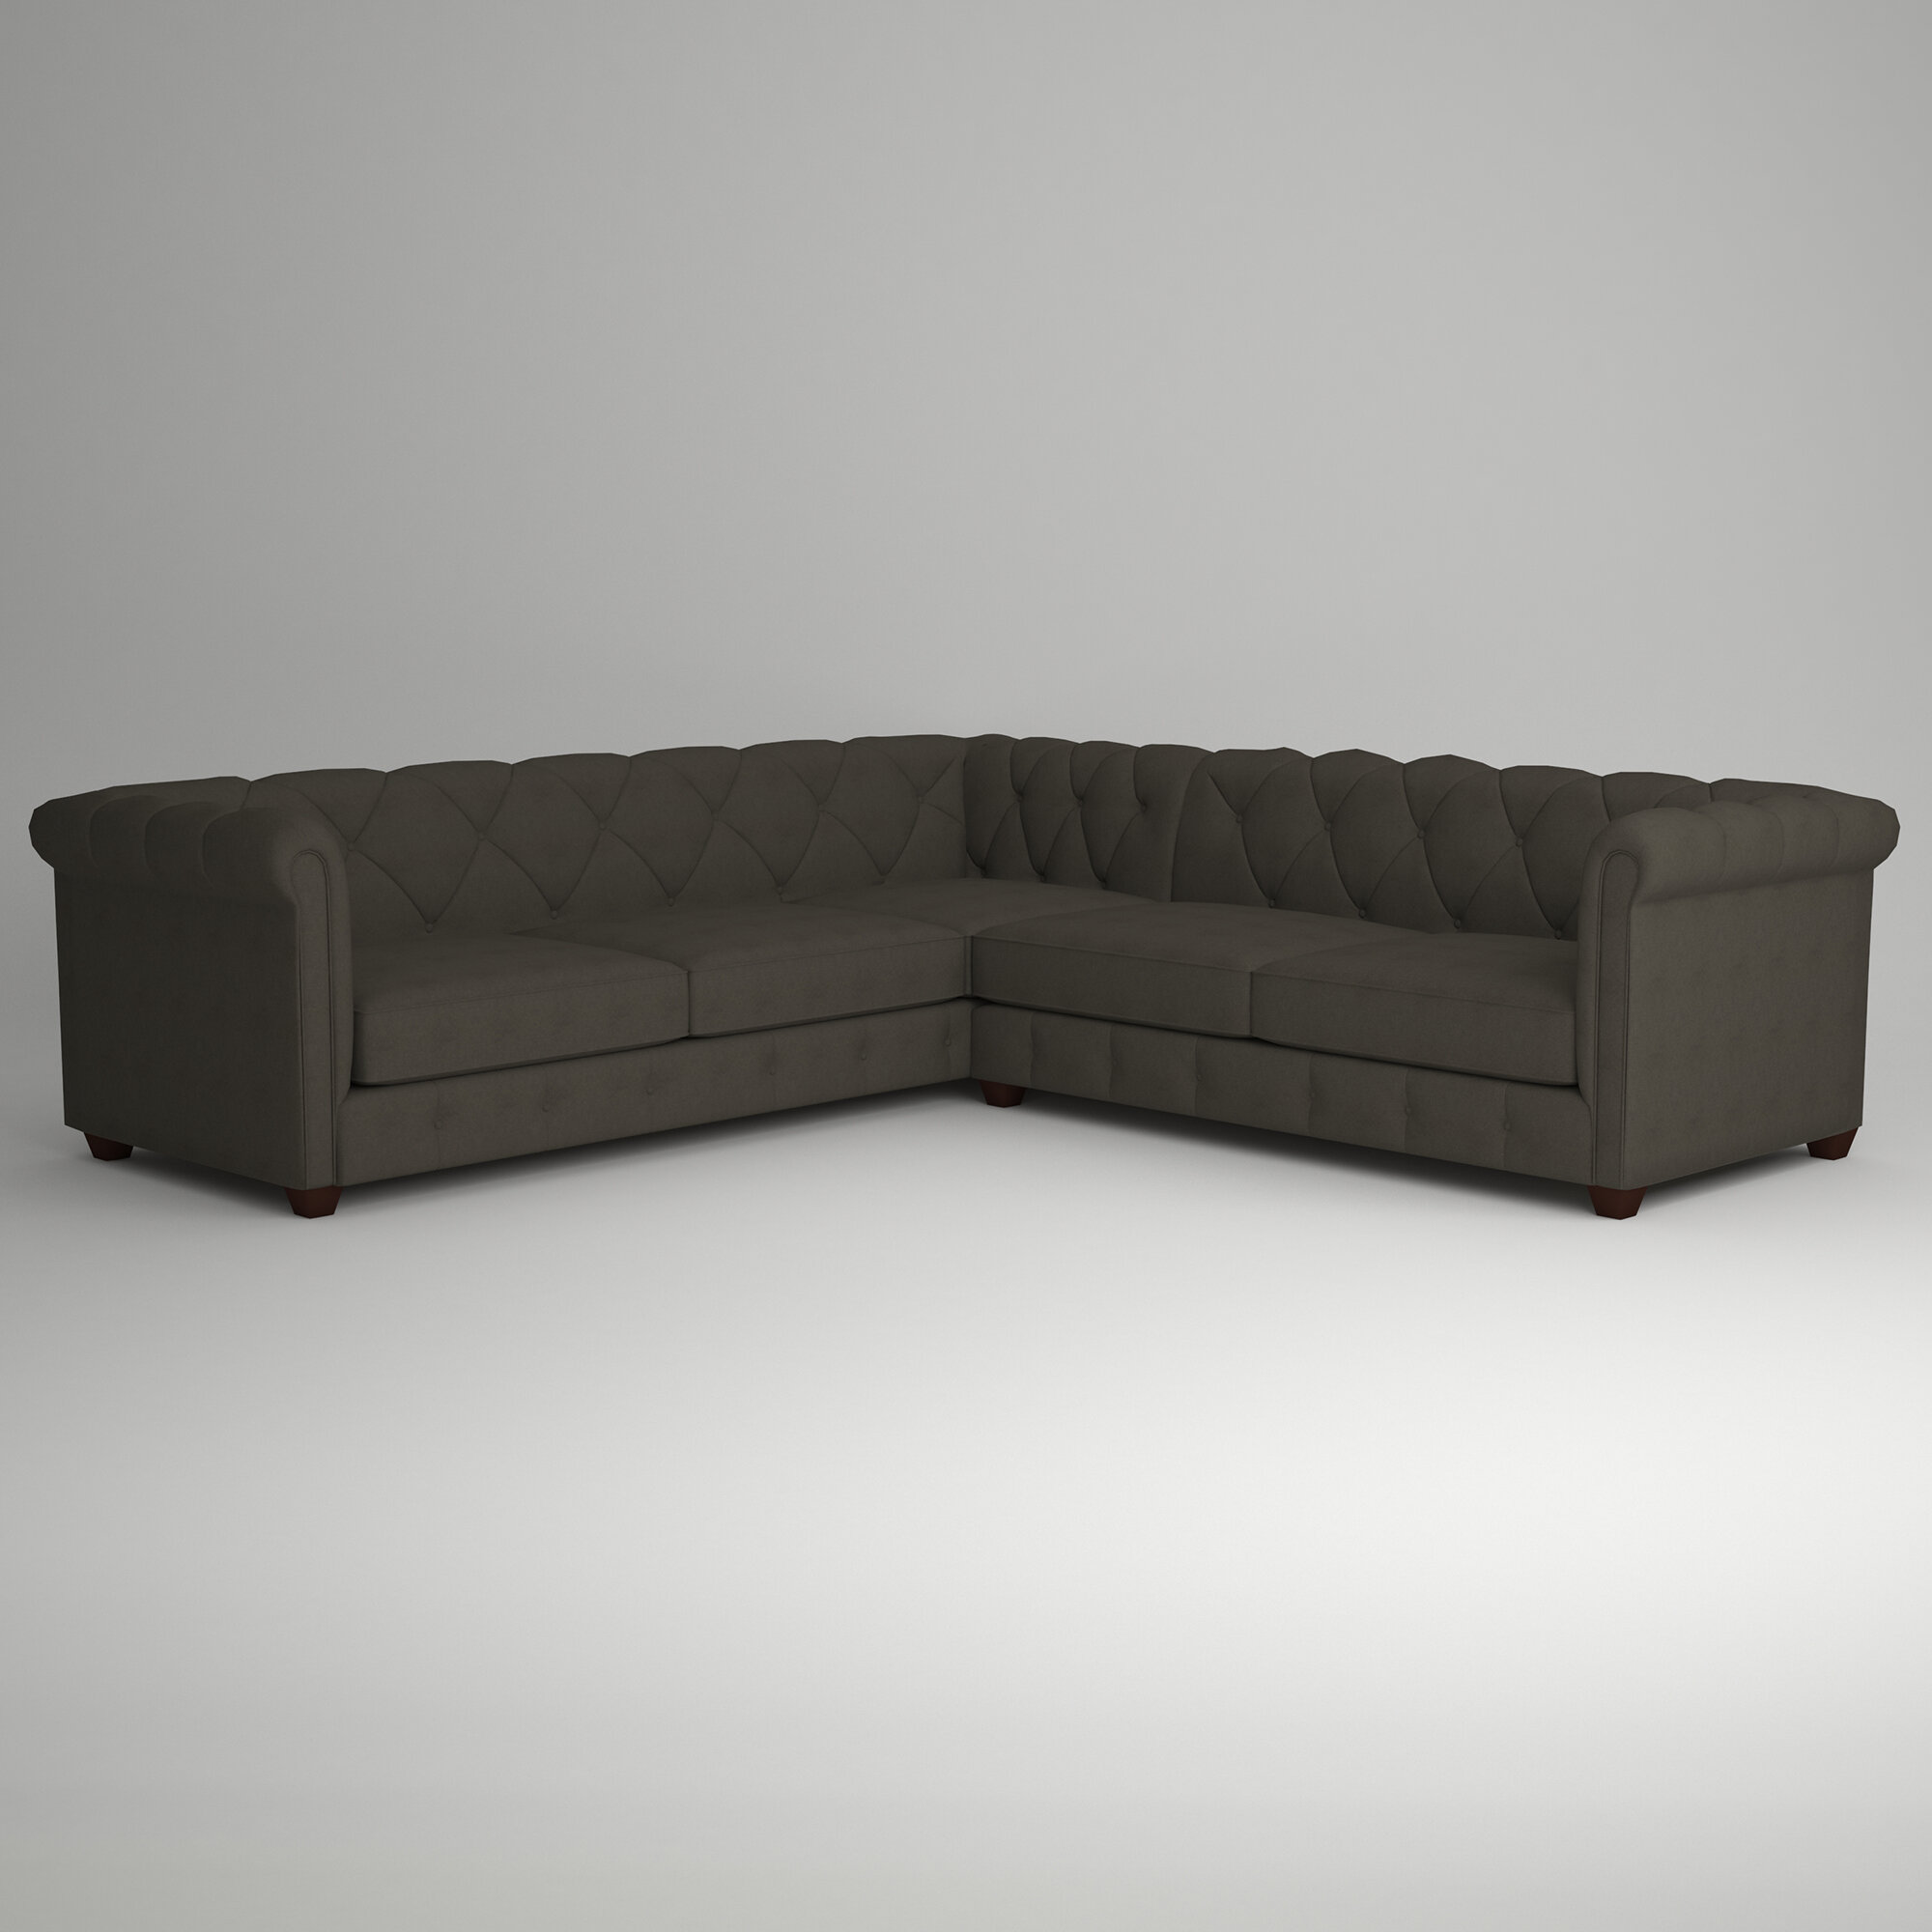 Wondrous Keegan Sectional Inzonedesignstudio Interior Chair Design Inzonedesignstudiocom